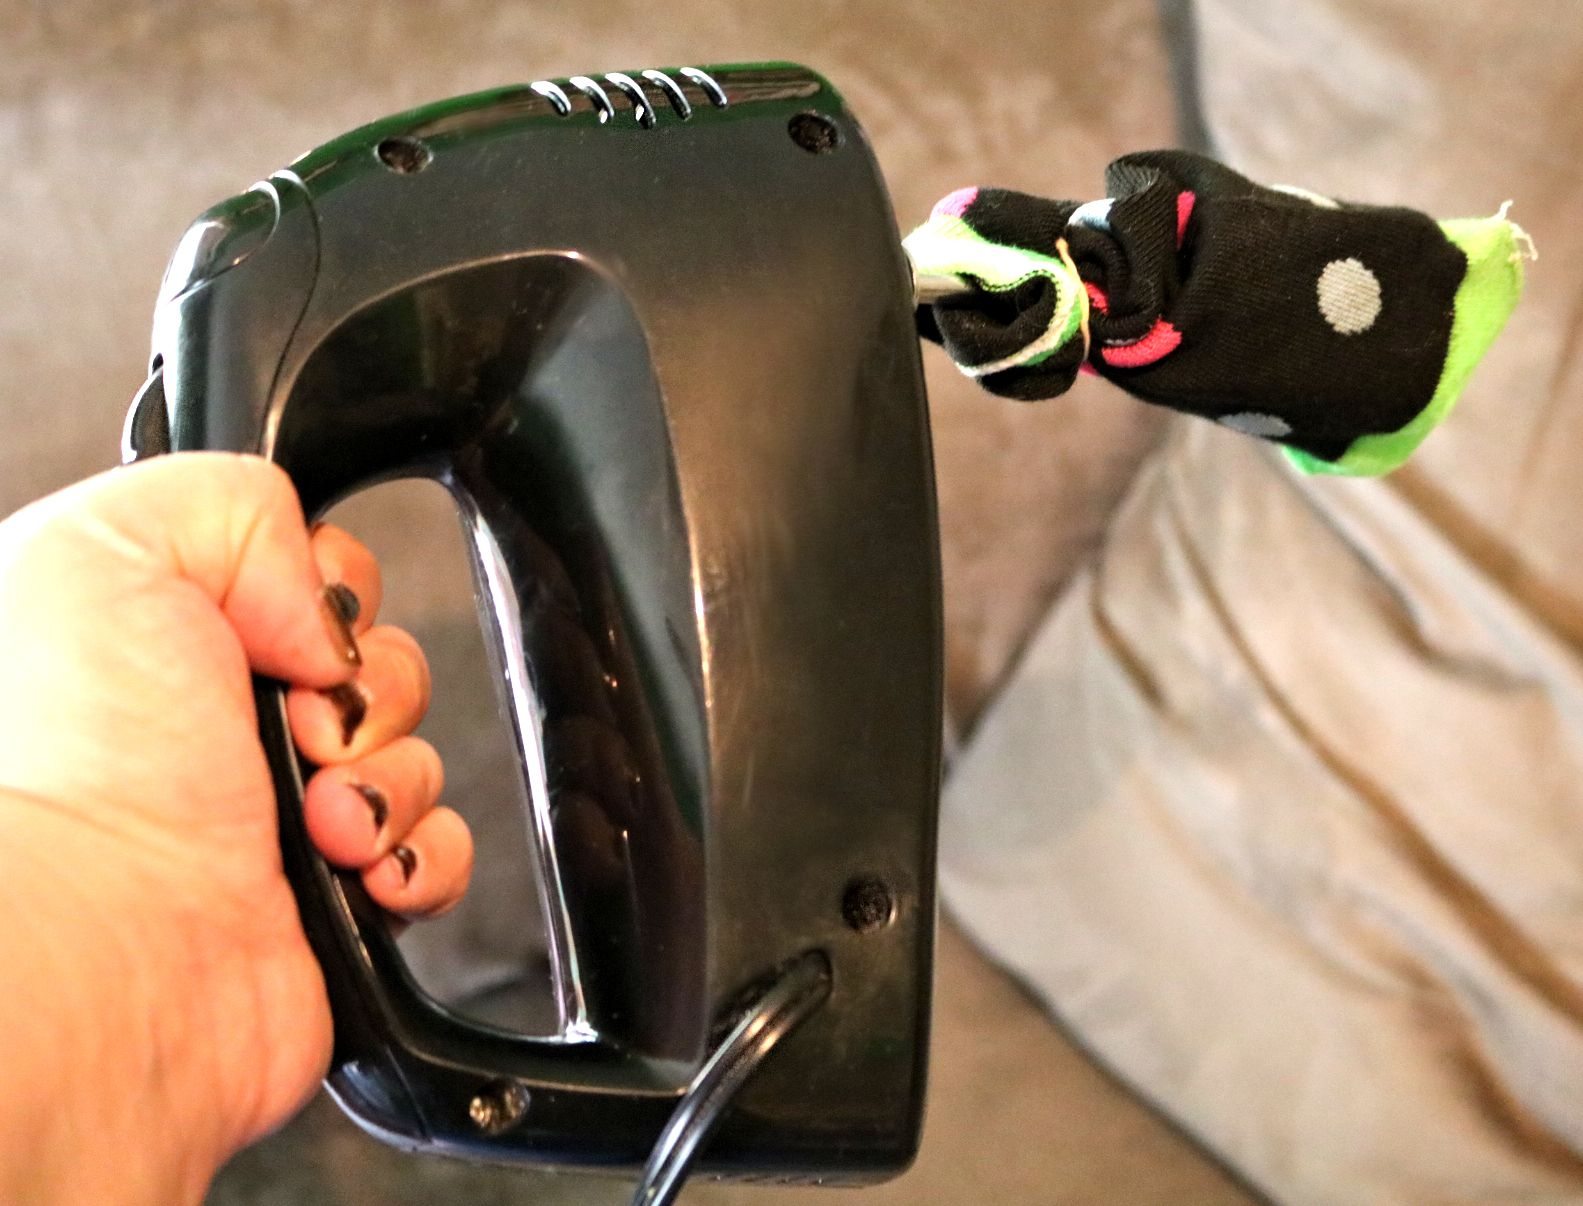 Remove pet hair with a hand mixer